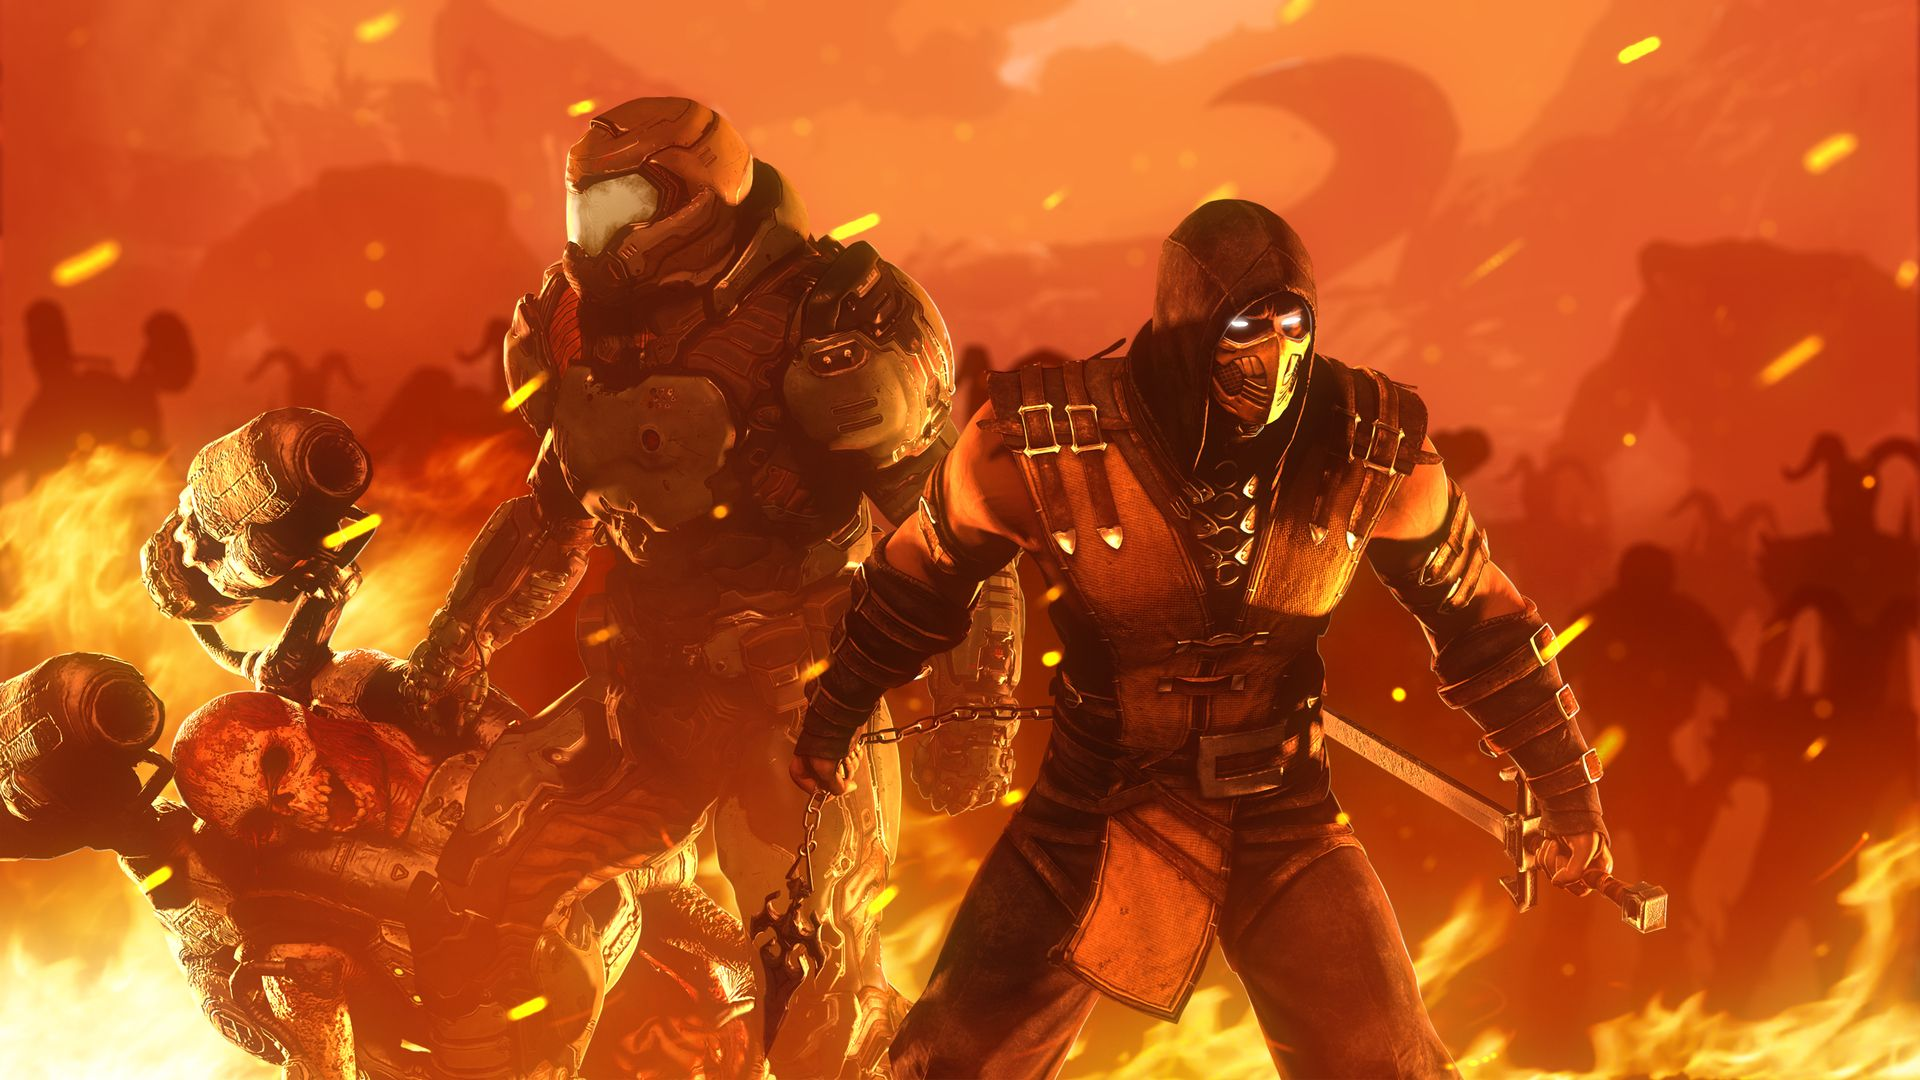 Doom Slayer Wallpapers Top Free Doom Slayer Backgrounds